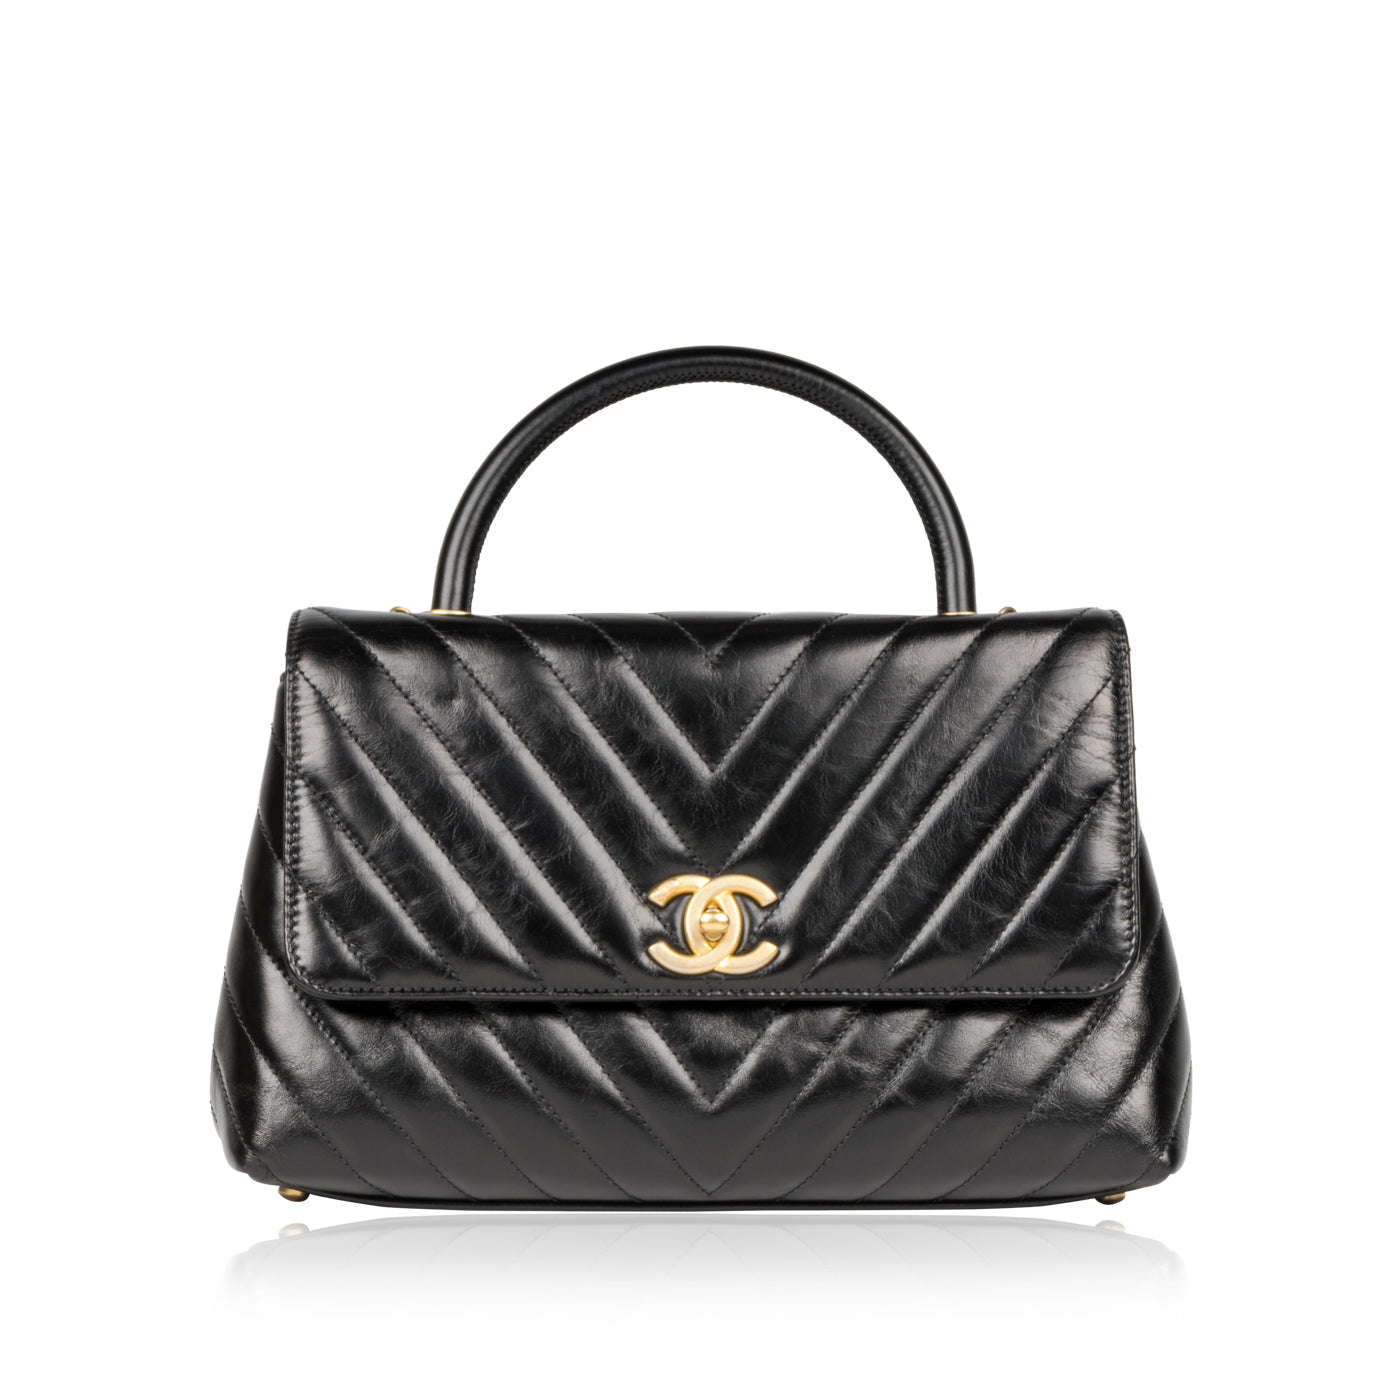 b2800a247e97d3 Chanel - Coco Handle Flap Bag - Small - Black - Pre-Loved | Bagista